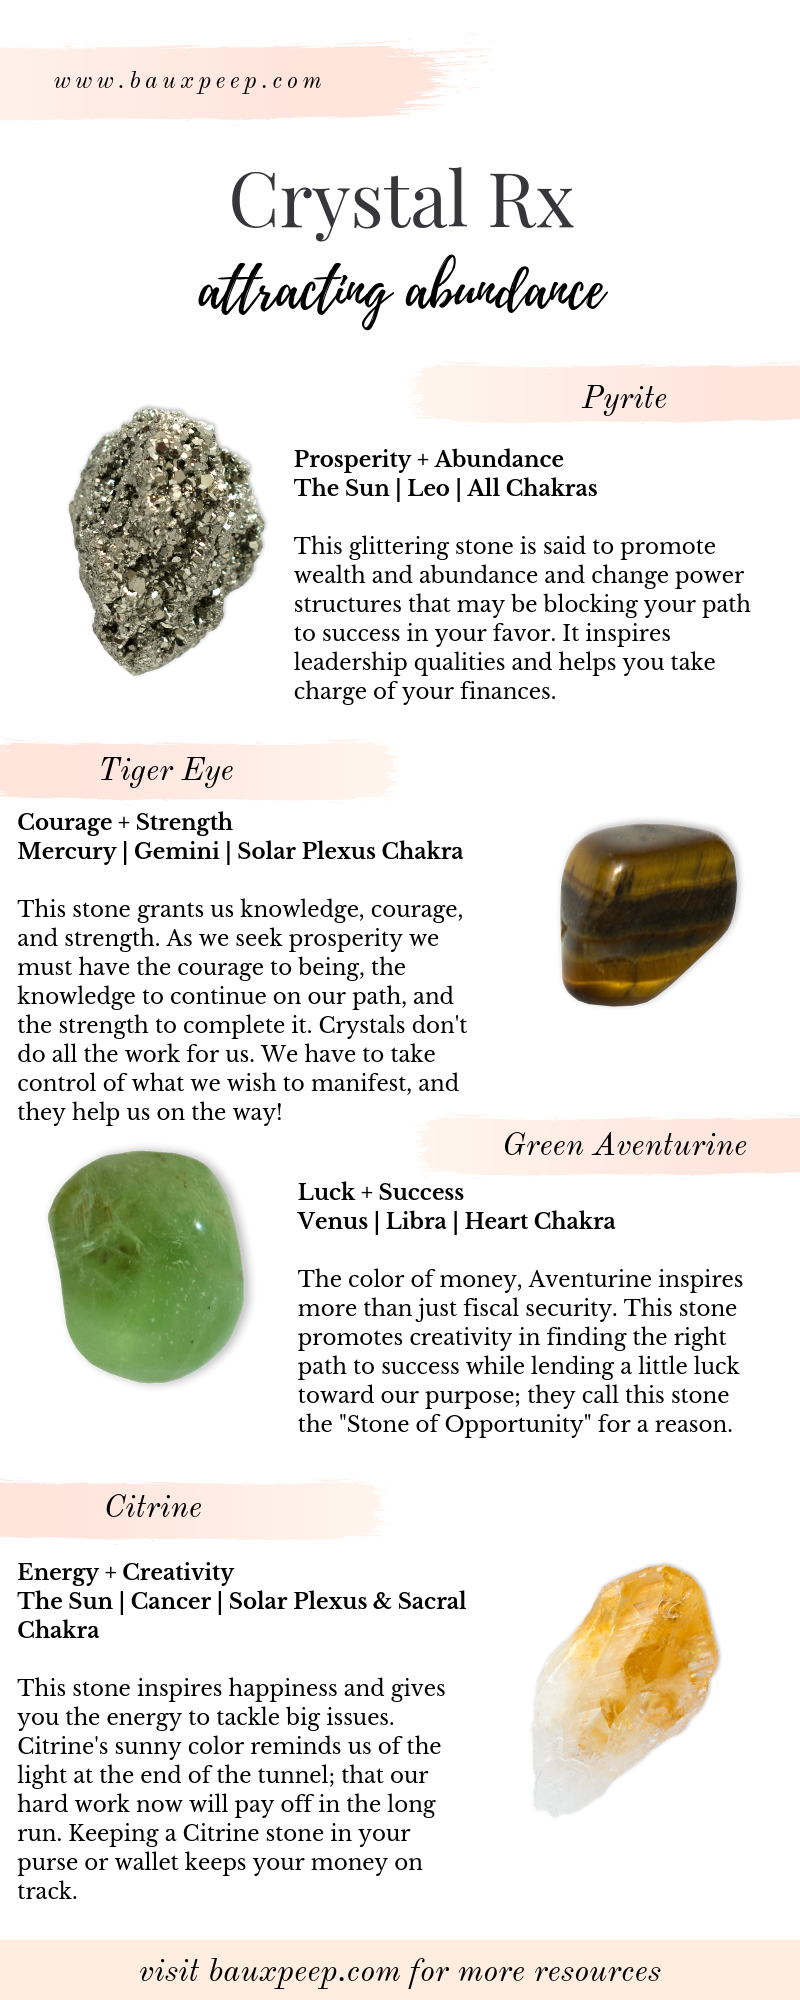 What's your Crystal Rx? Looking for the best crystals to attract abundance? Here a four of the BEST crystals for promoting prosperity and abundance in your life. Check out the blog for more FREE crystal healing resources ! #crystals #crystalmeanings #crystalrx #crystalsforabundance #moneycrystals #prosperitycrystals #crystalhealing #howtousehealingcrystals #crystalhealing